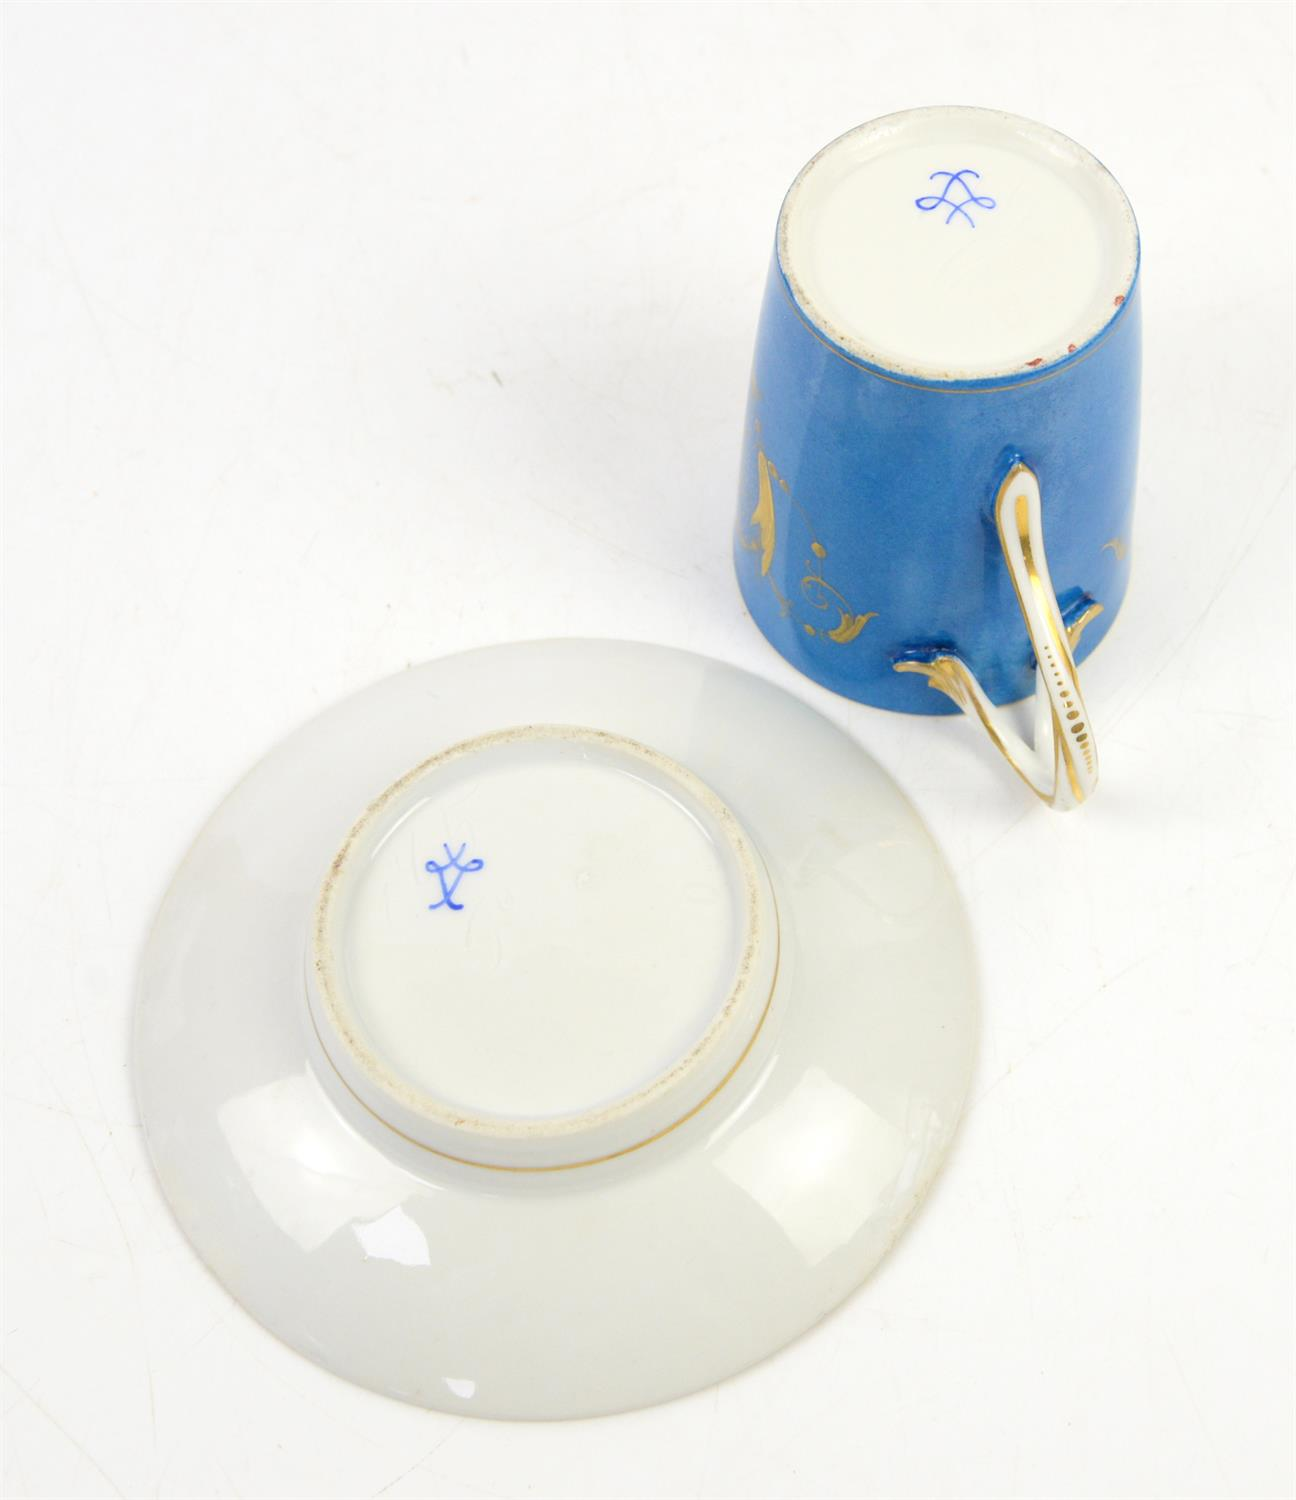 """Early 19th century Sevres """"Bleu Celeste"""" milk cup with cover and saucer, decorated with a portrait - Image 5 of 5"""